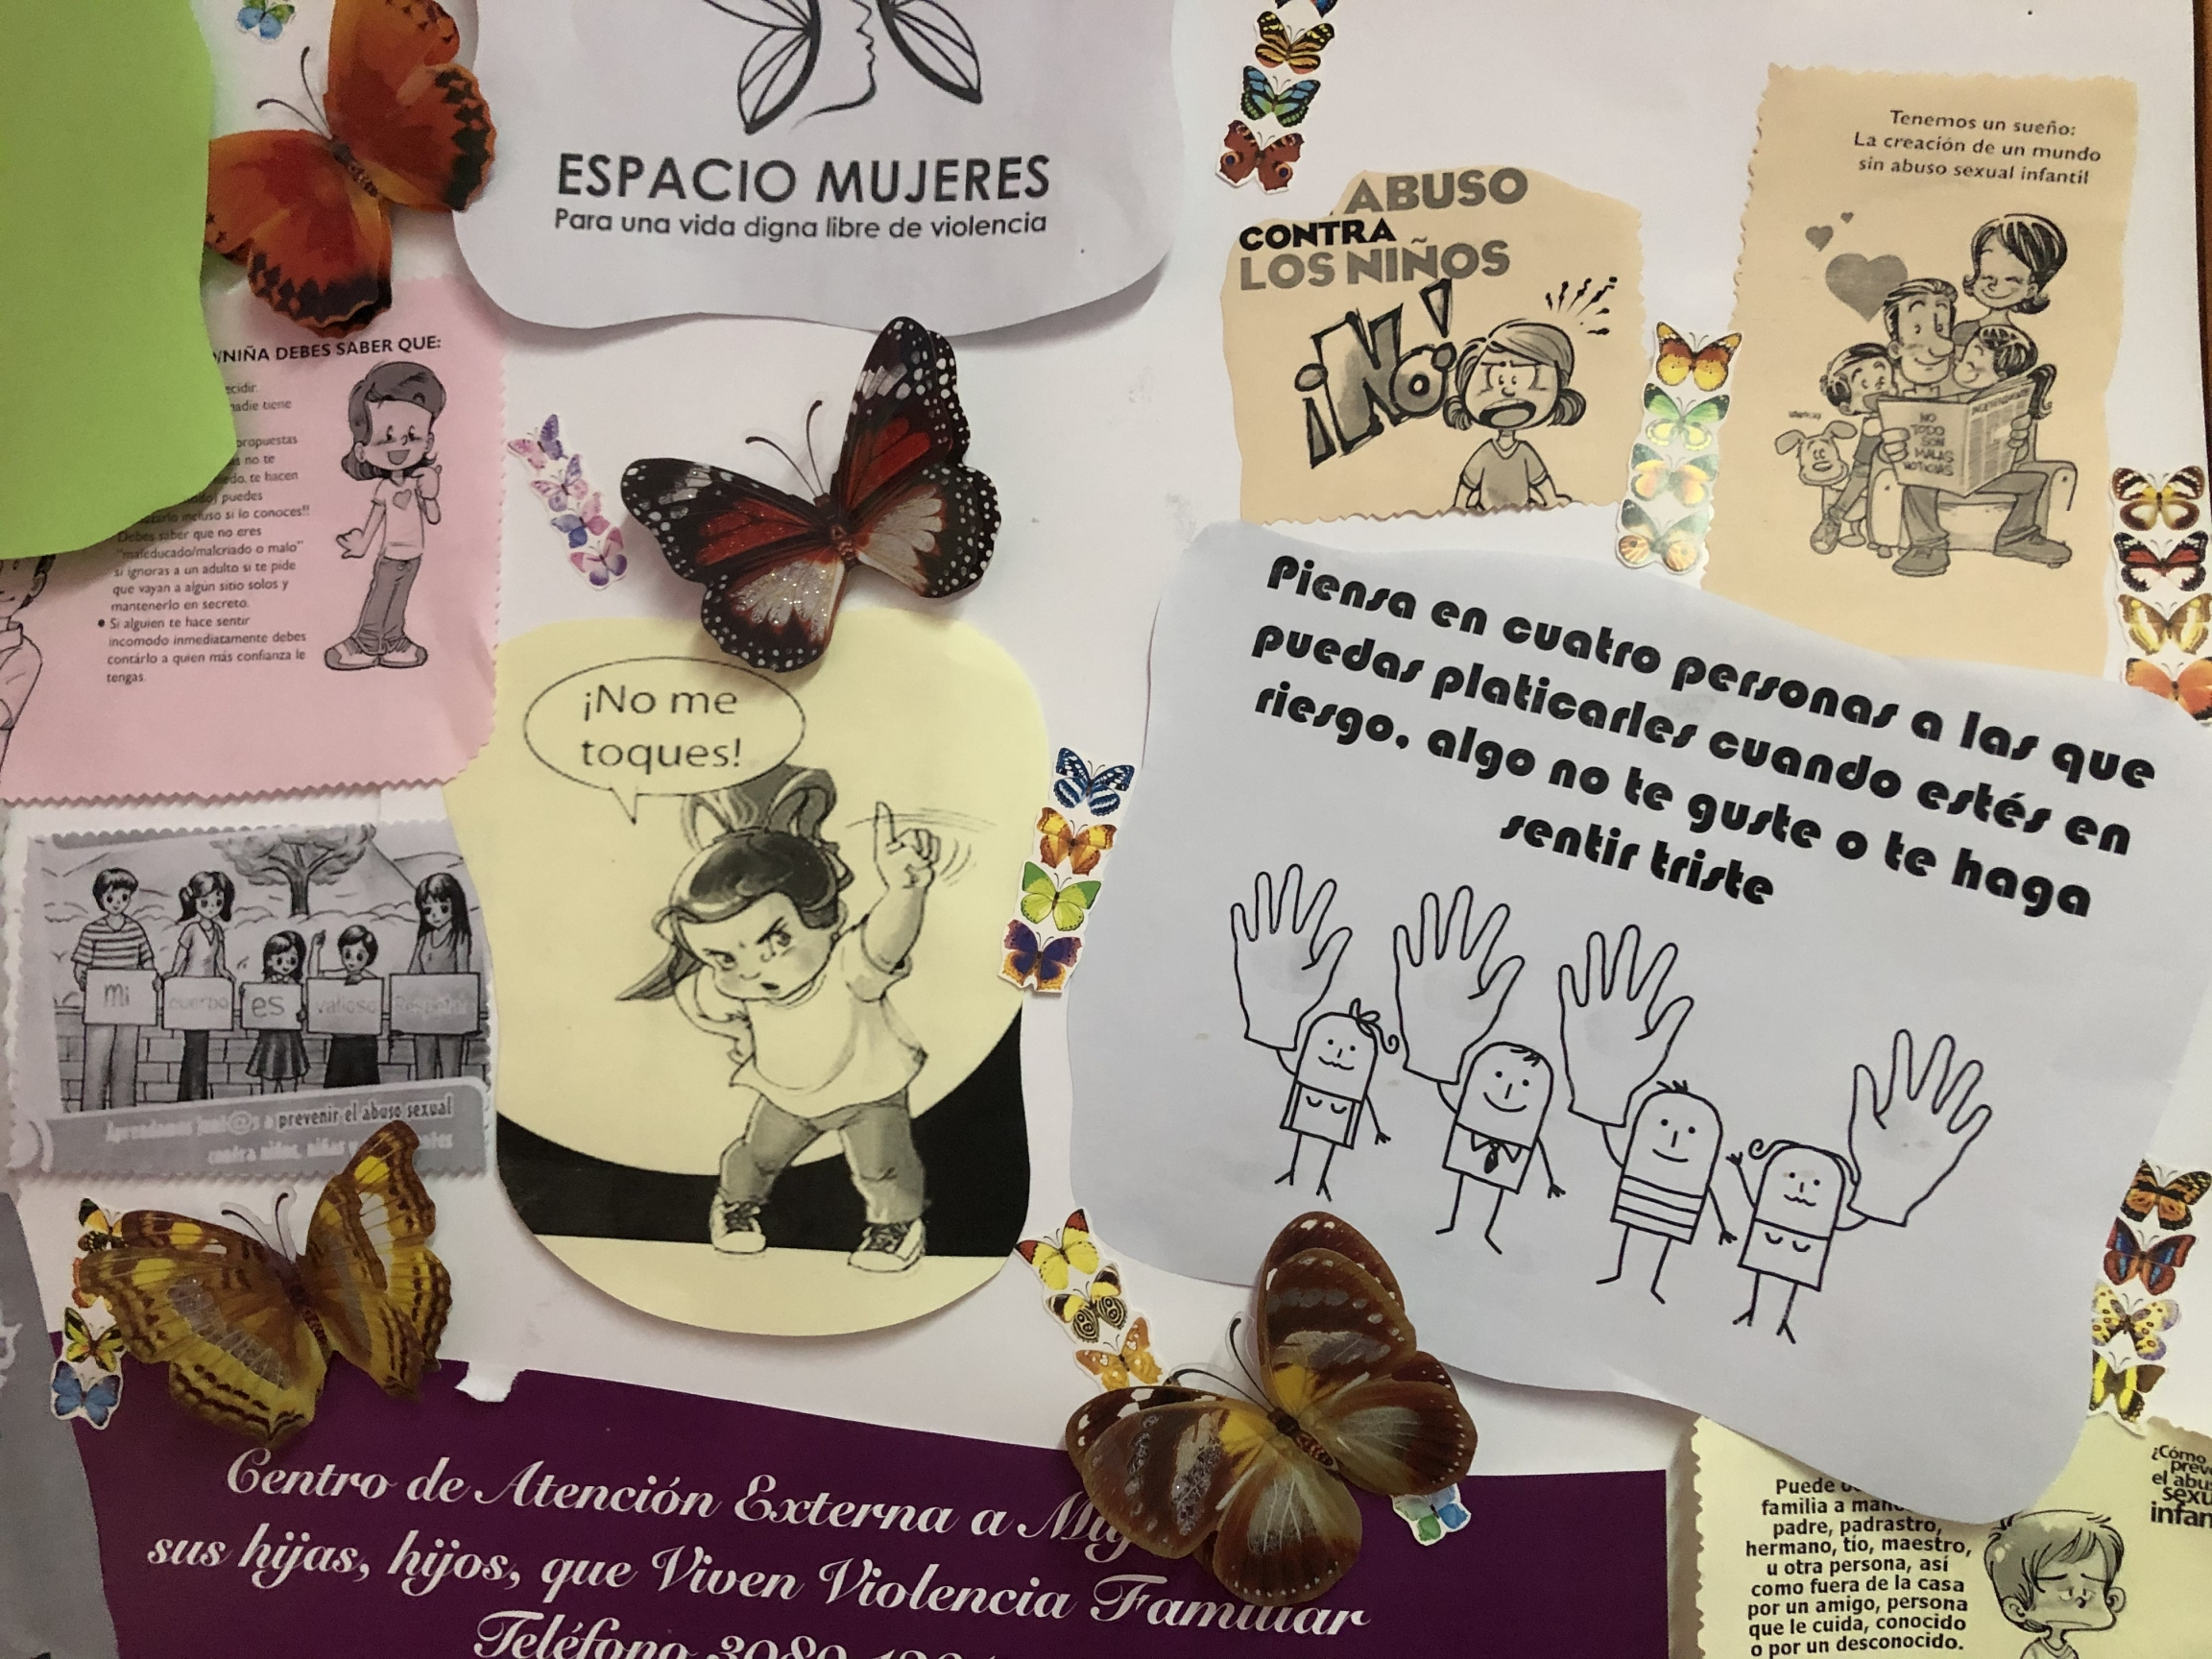 Signs at a women's shelter in Mexico City encourage female empowerment and tips for women facing violence.